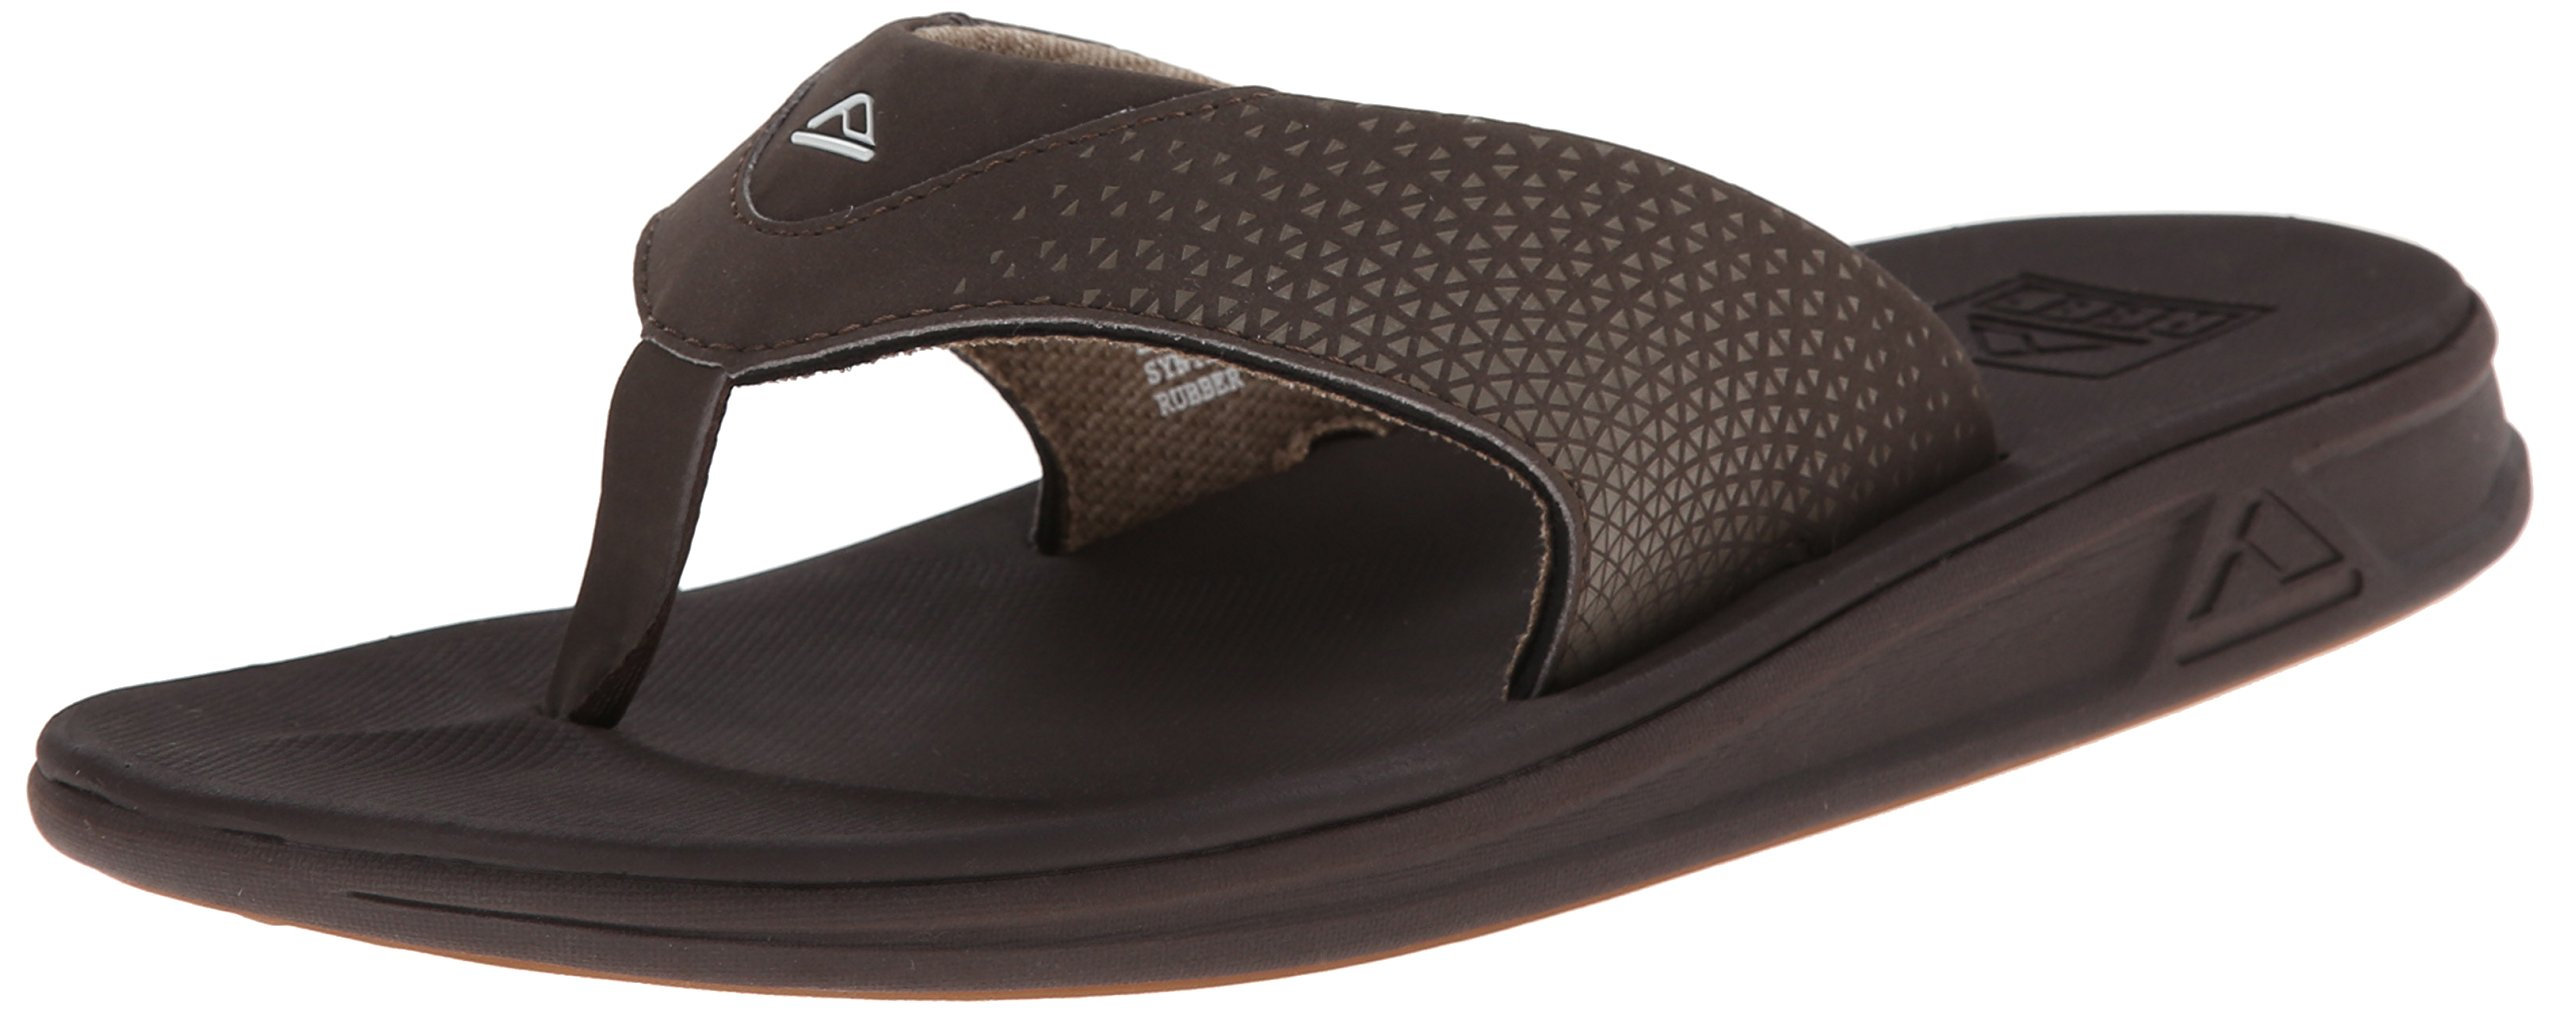 Reef Men's Rover Flip Flop, Brown, 11 M US